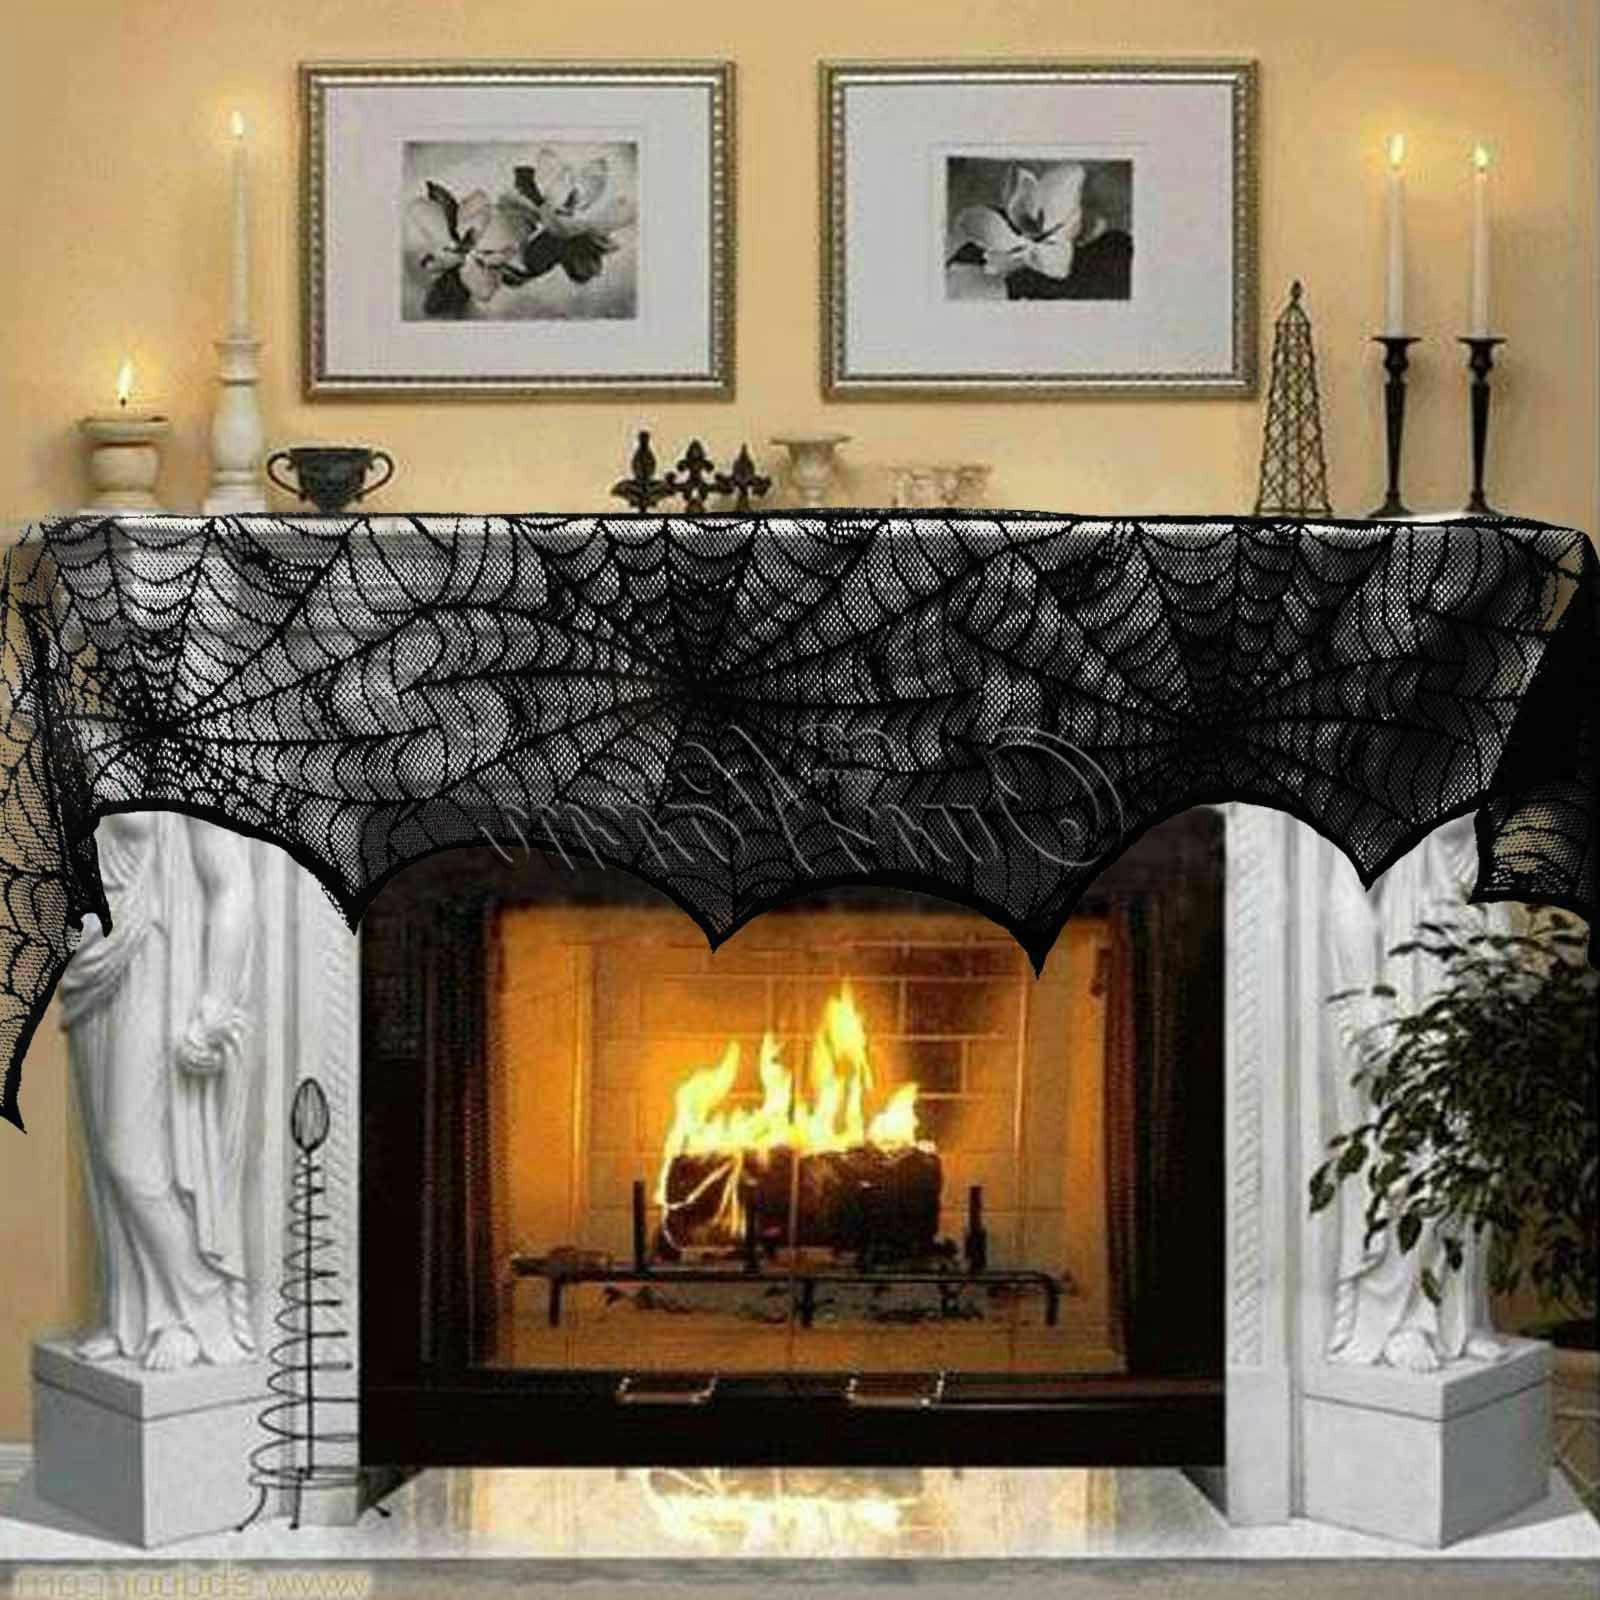 halloween decorations props black lace spiderweb fireplace